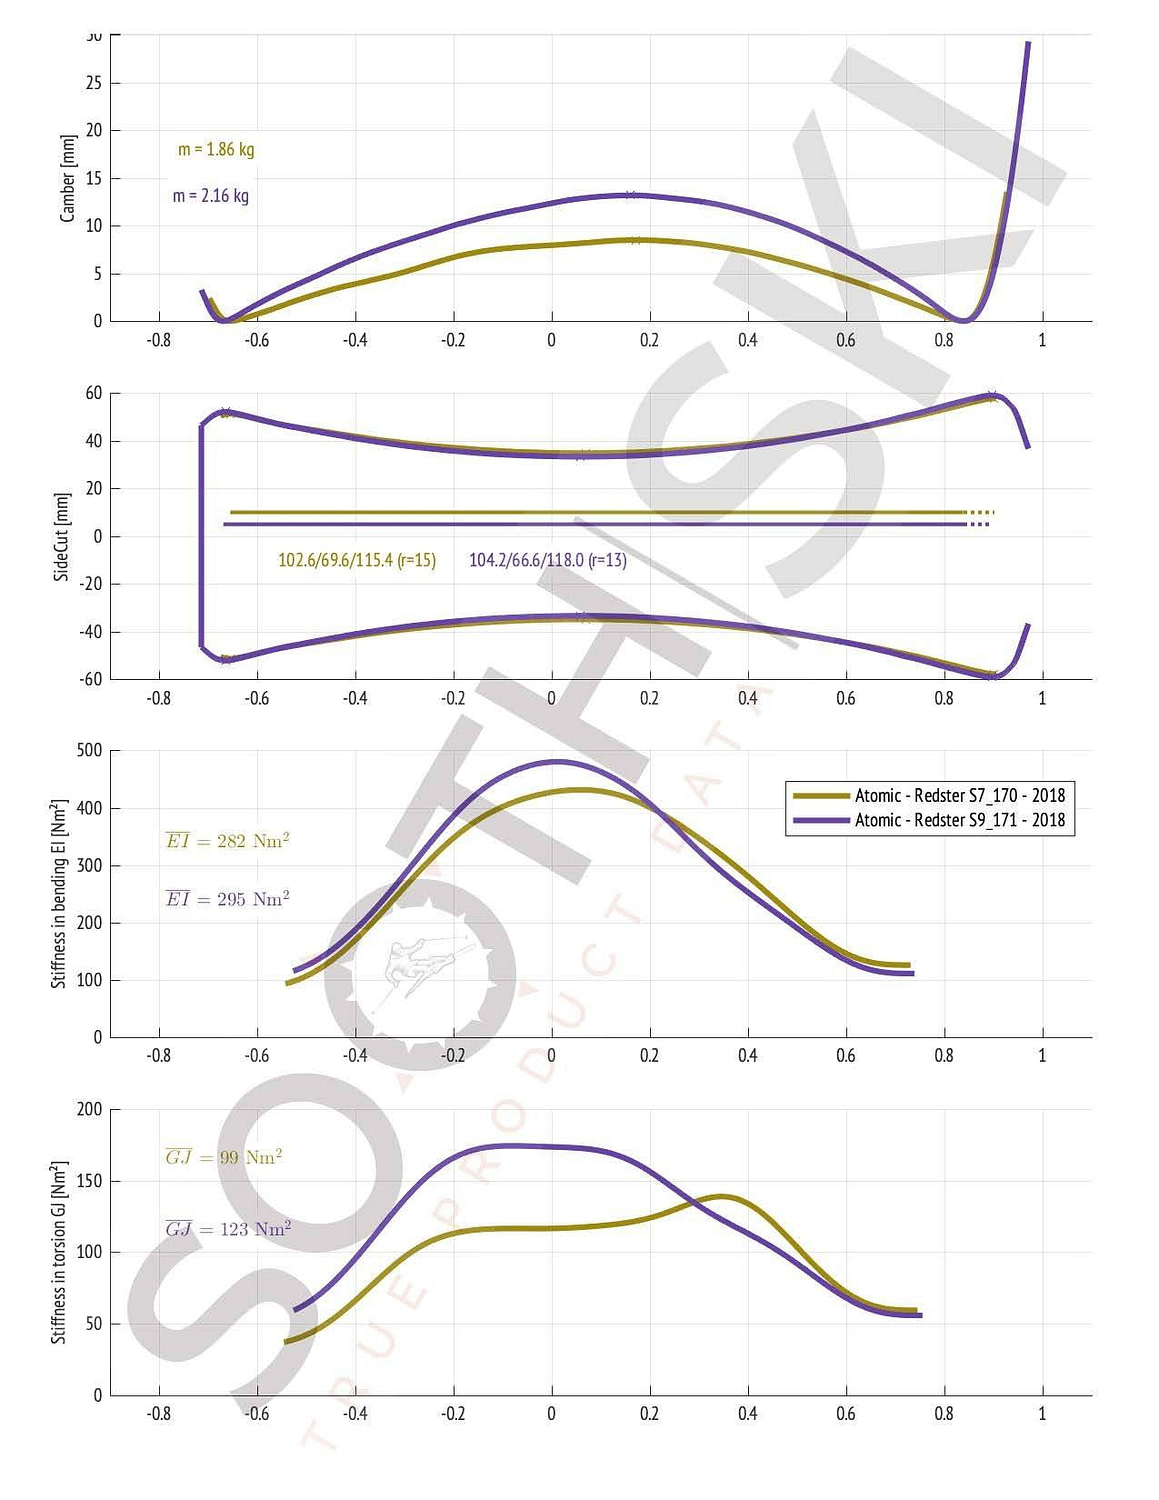 Compare Atomic Redster S7 versus S9 (geometry, bending and torsional stiffness)